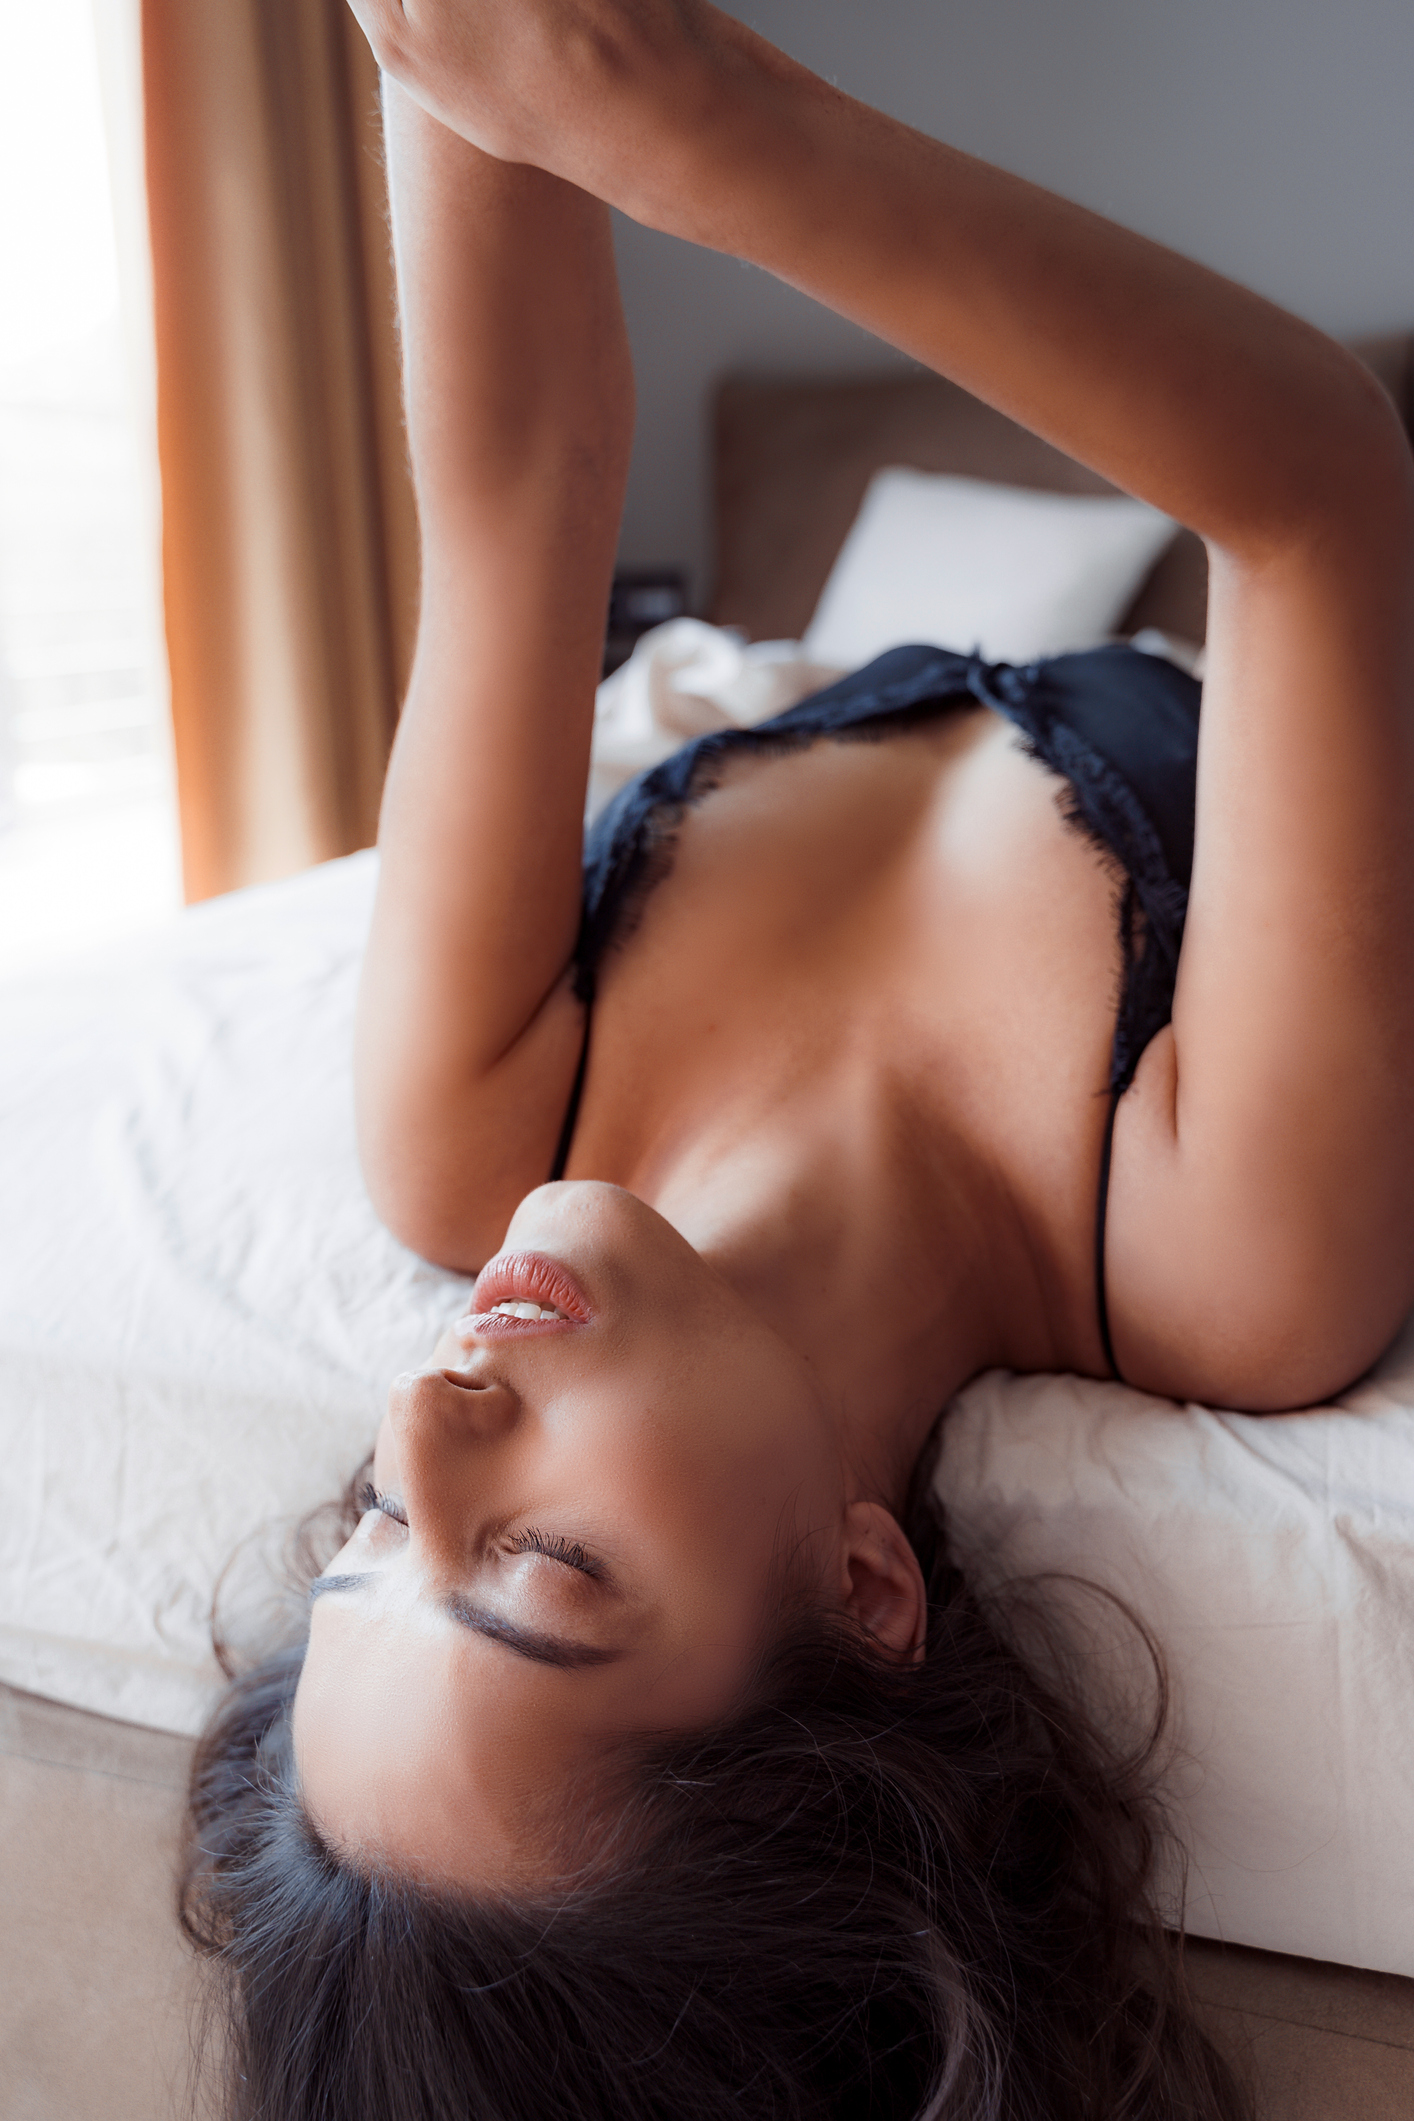 Gorgeous young woman lying alone in her bed with her hands up